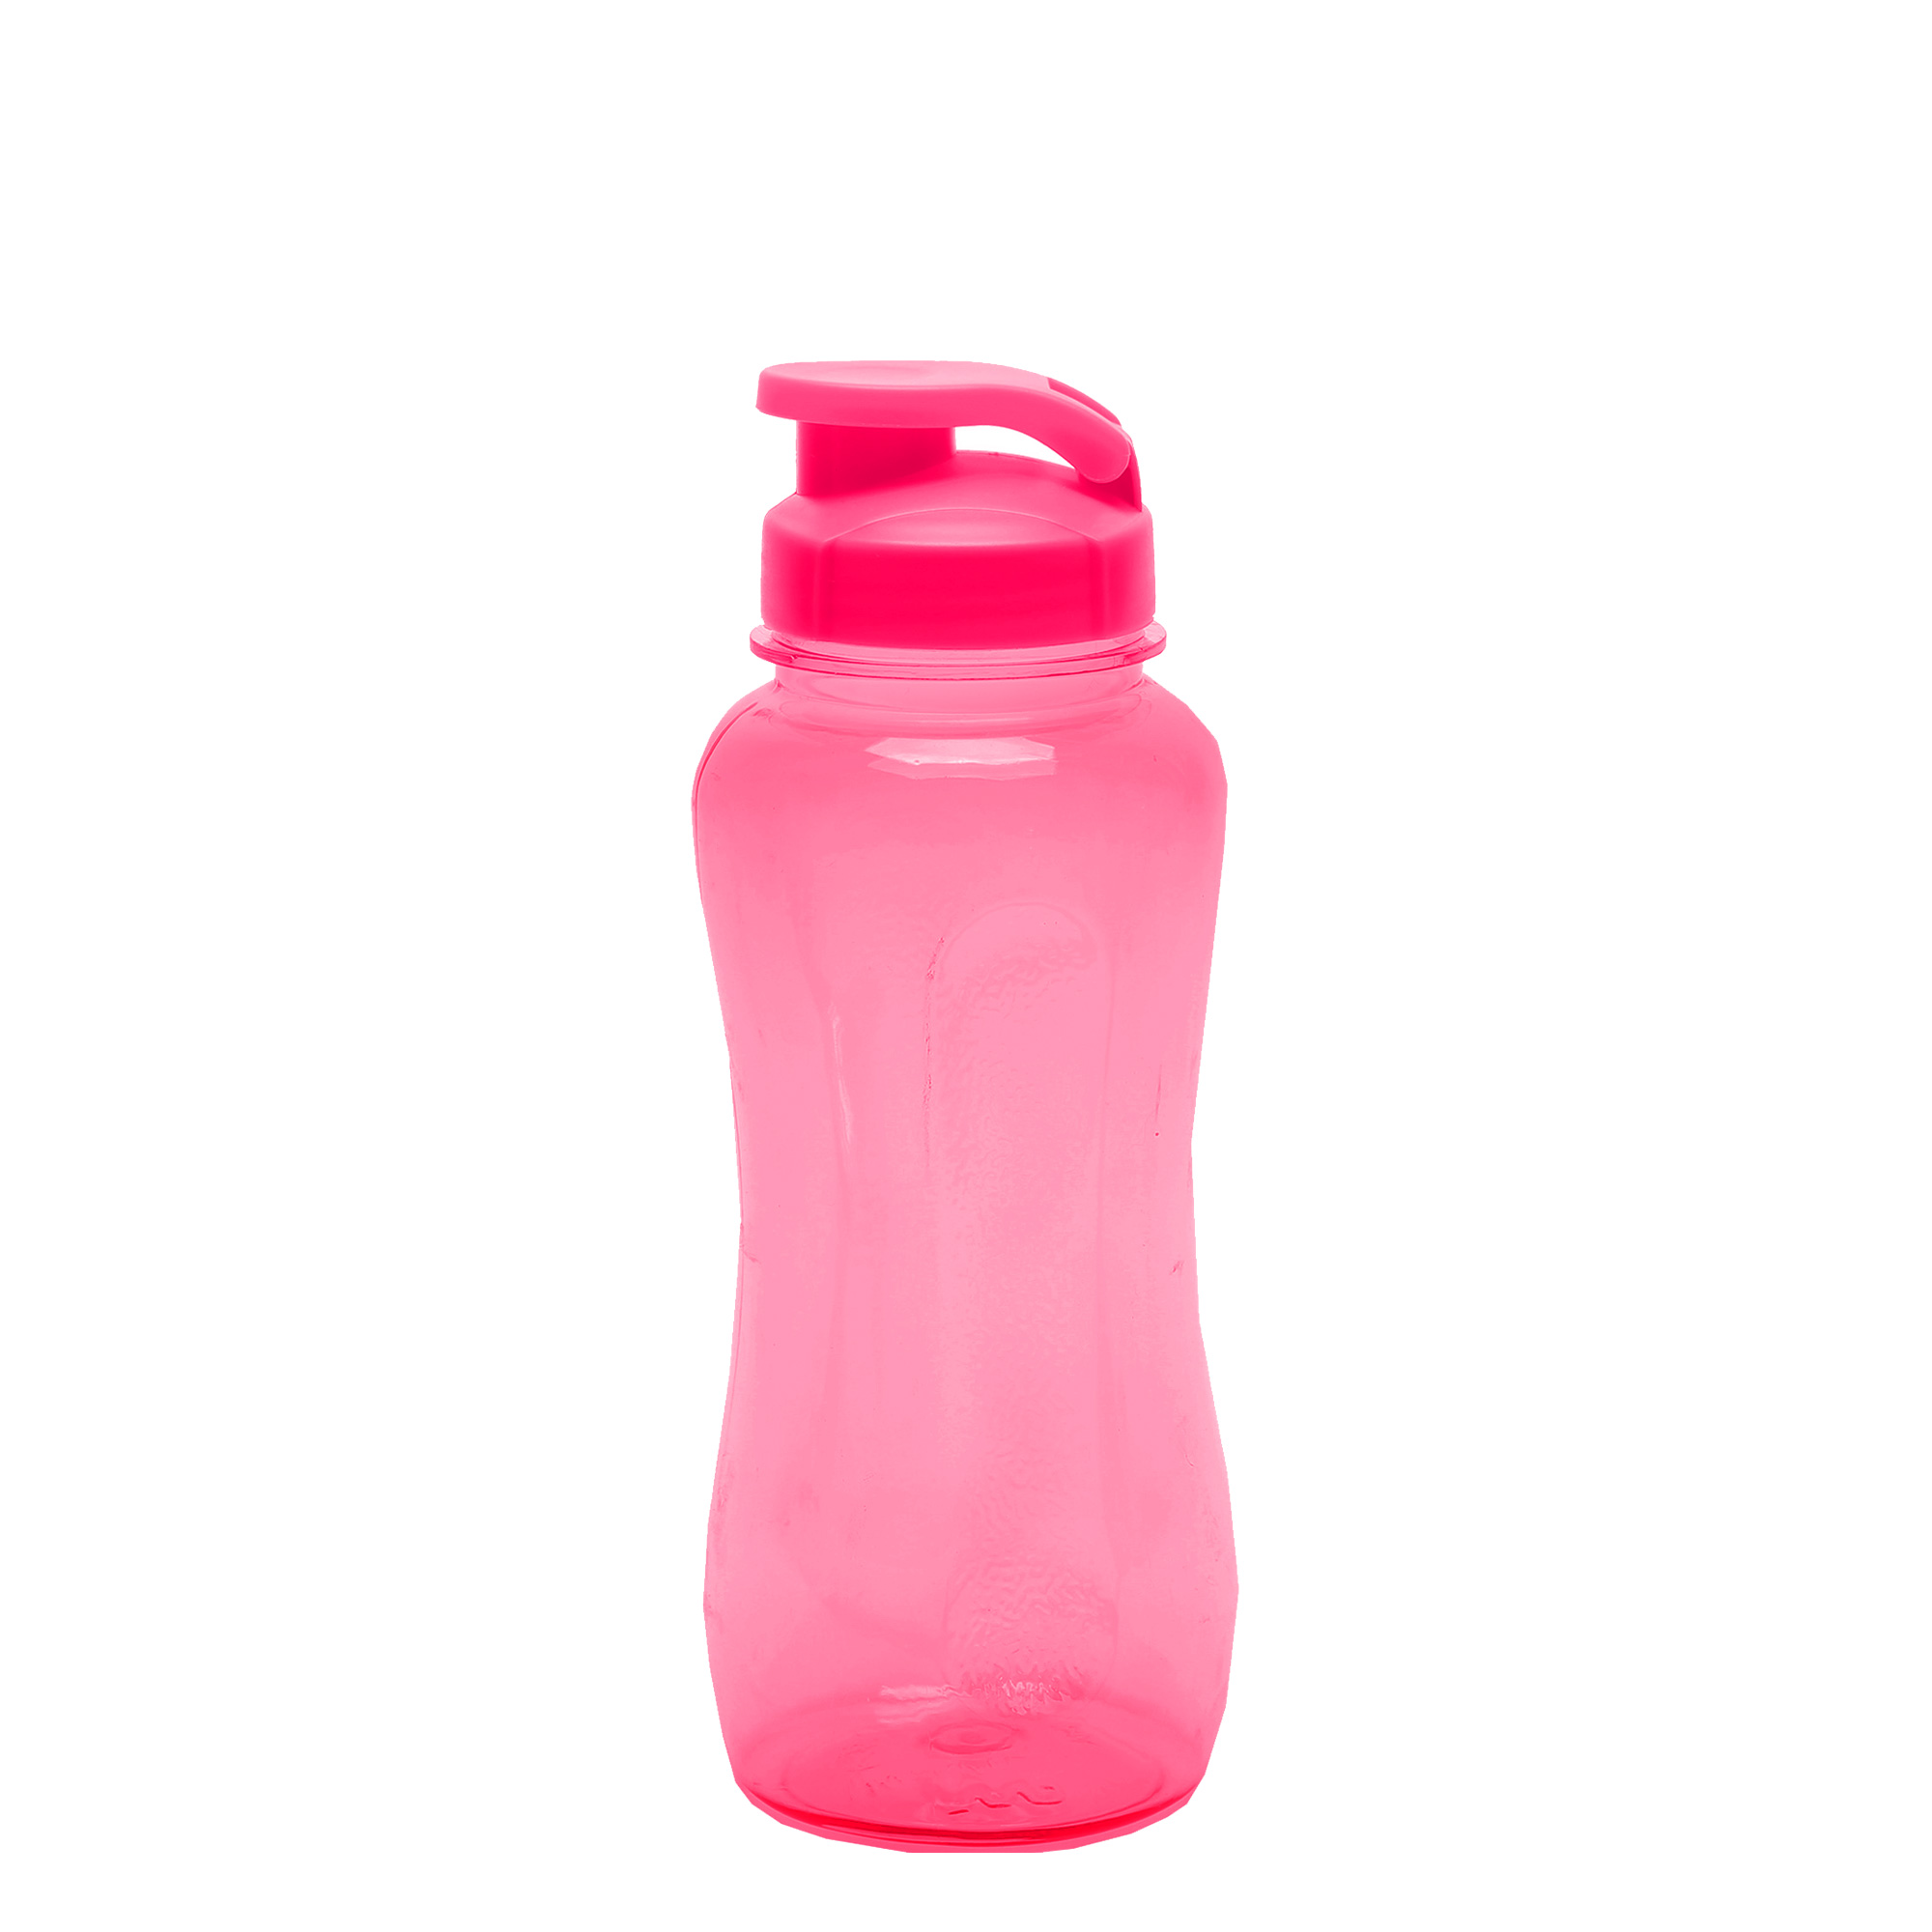 New Squeeze Horizonte 500 Ml - Rosa Pink